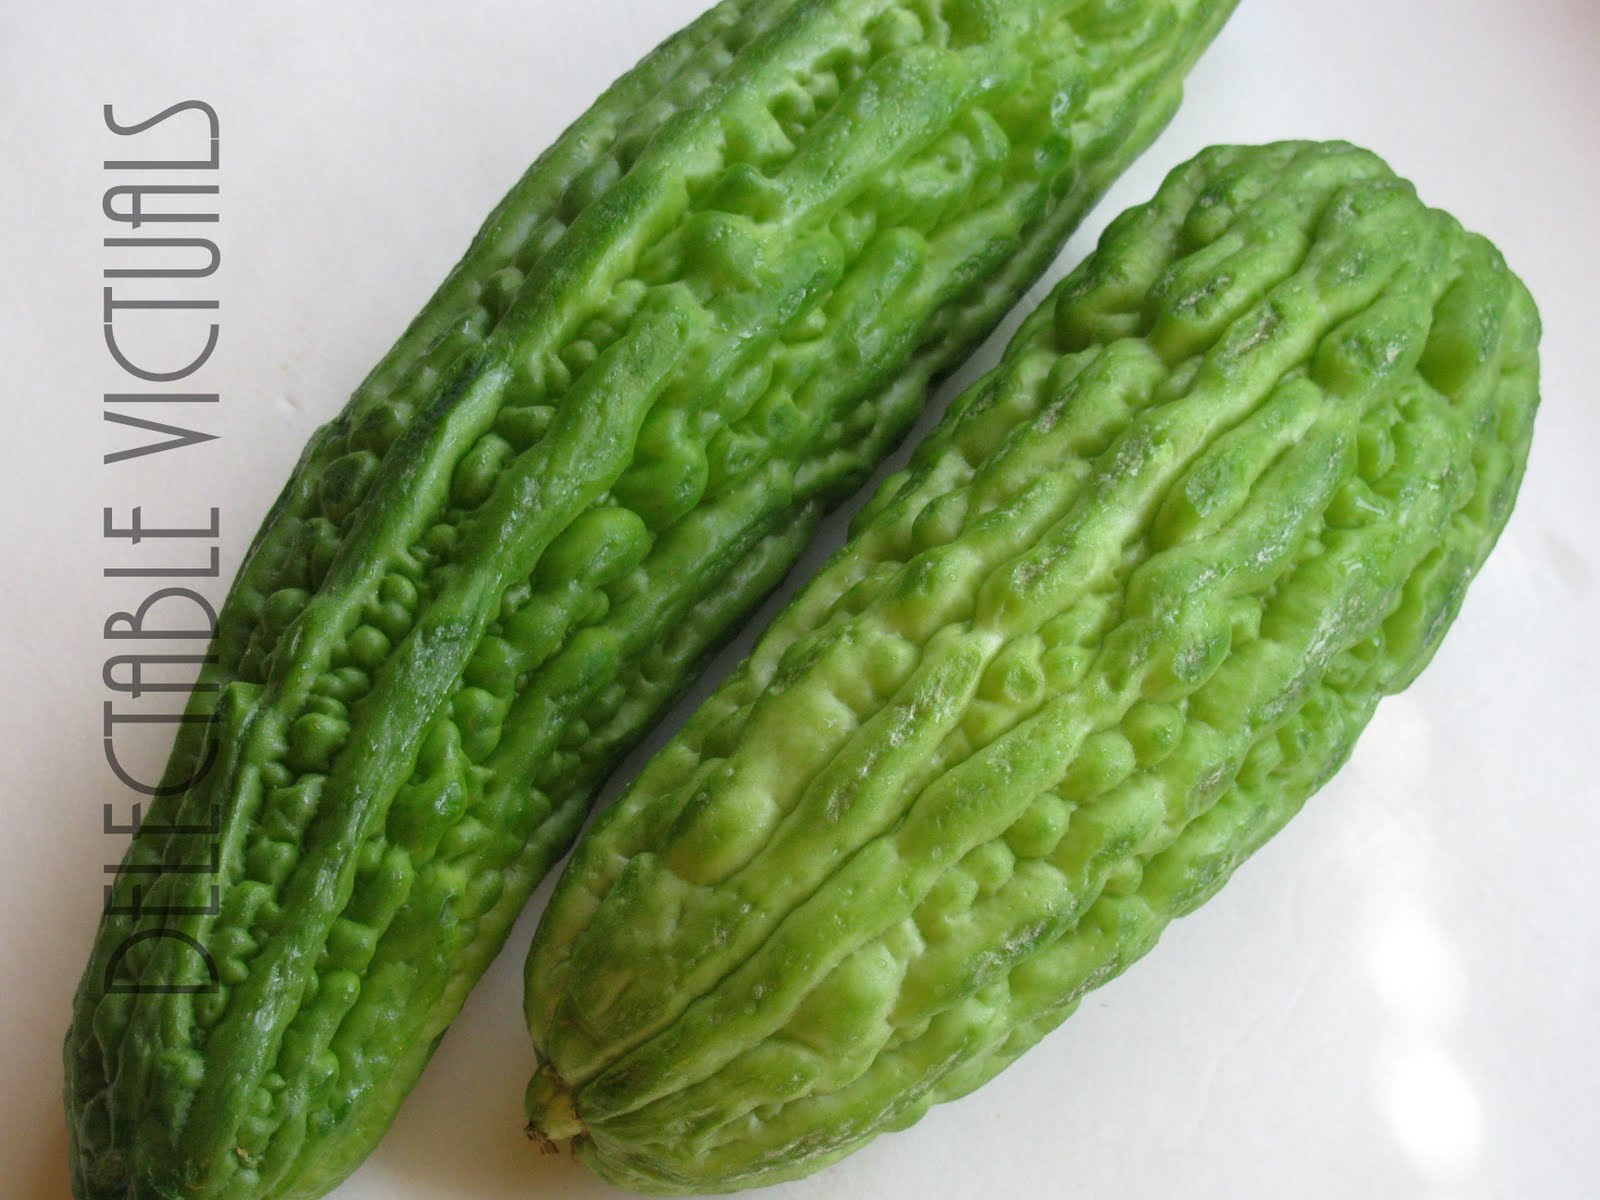 bittermelon Bitter melon has been shown to lower the levels of blood sugar several active substances in bitter melon have been studied in both animals and humans.